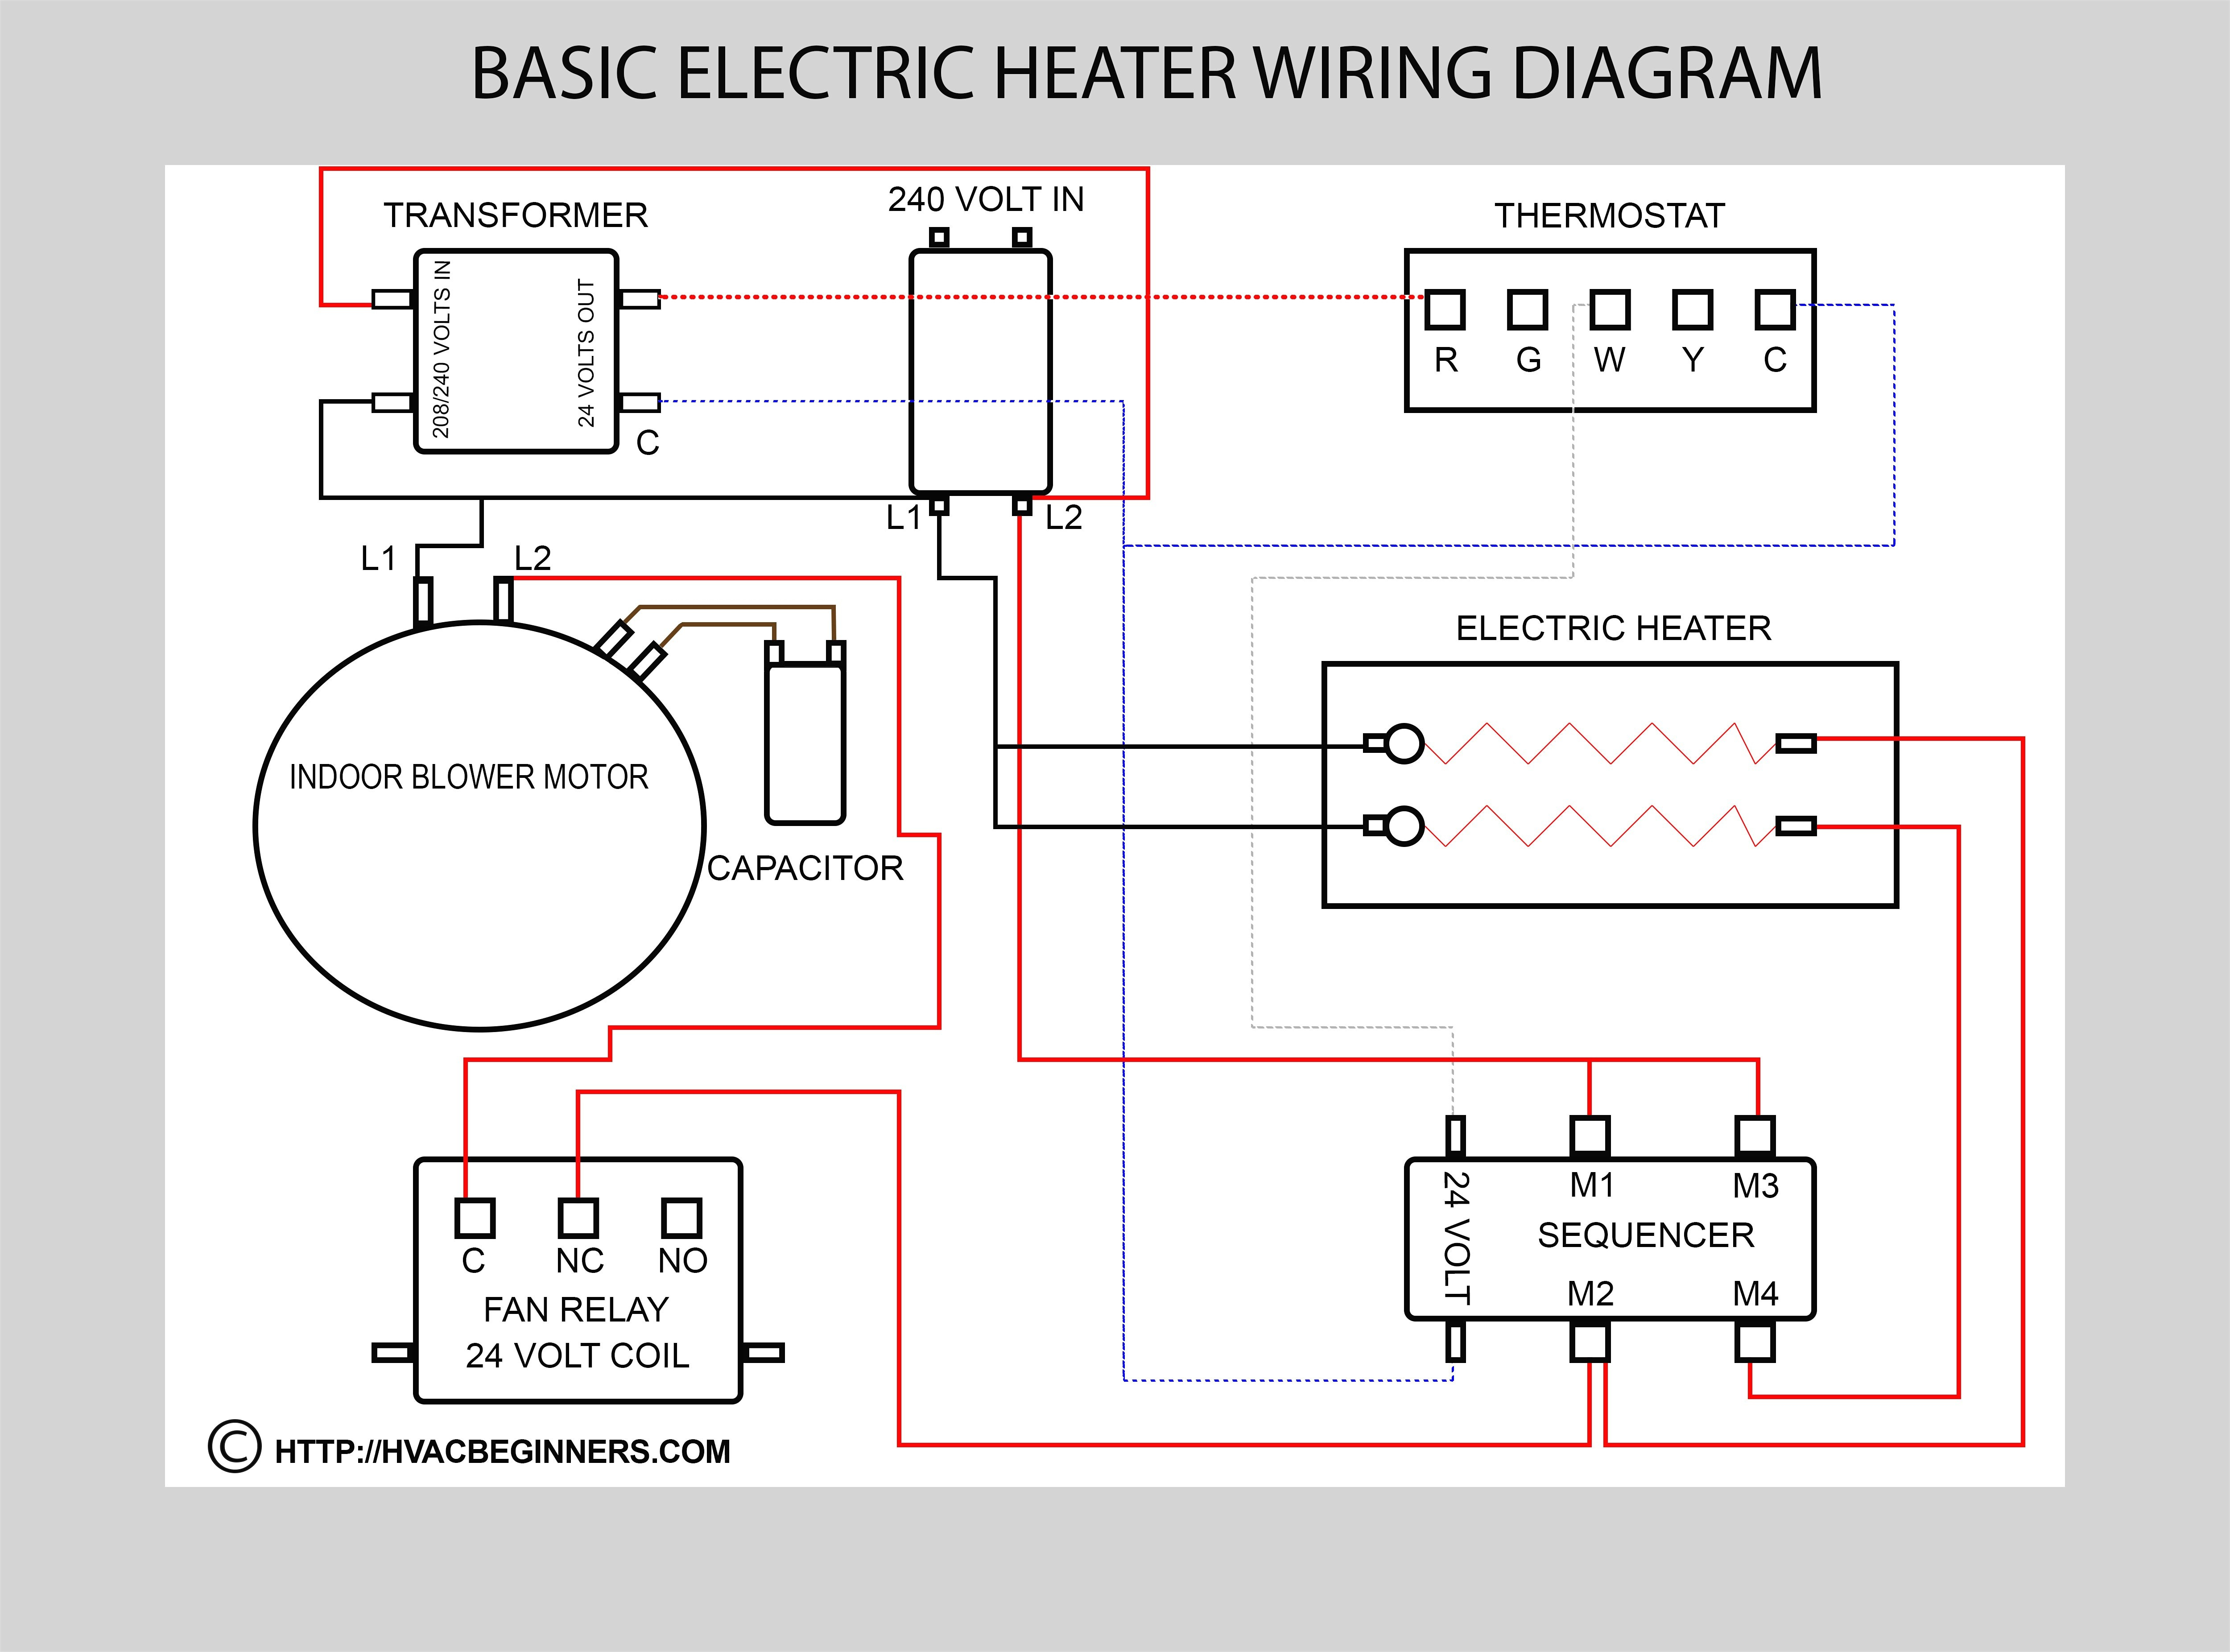 furnace fan relay wiring diagram Download-general electric gas furnace wiring diagram valid home ac wiring rh wheathill co Honeywell Thermostat Wiring 3-p